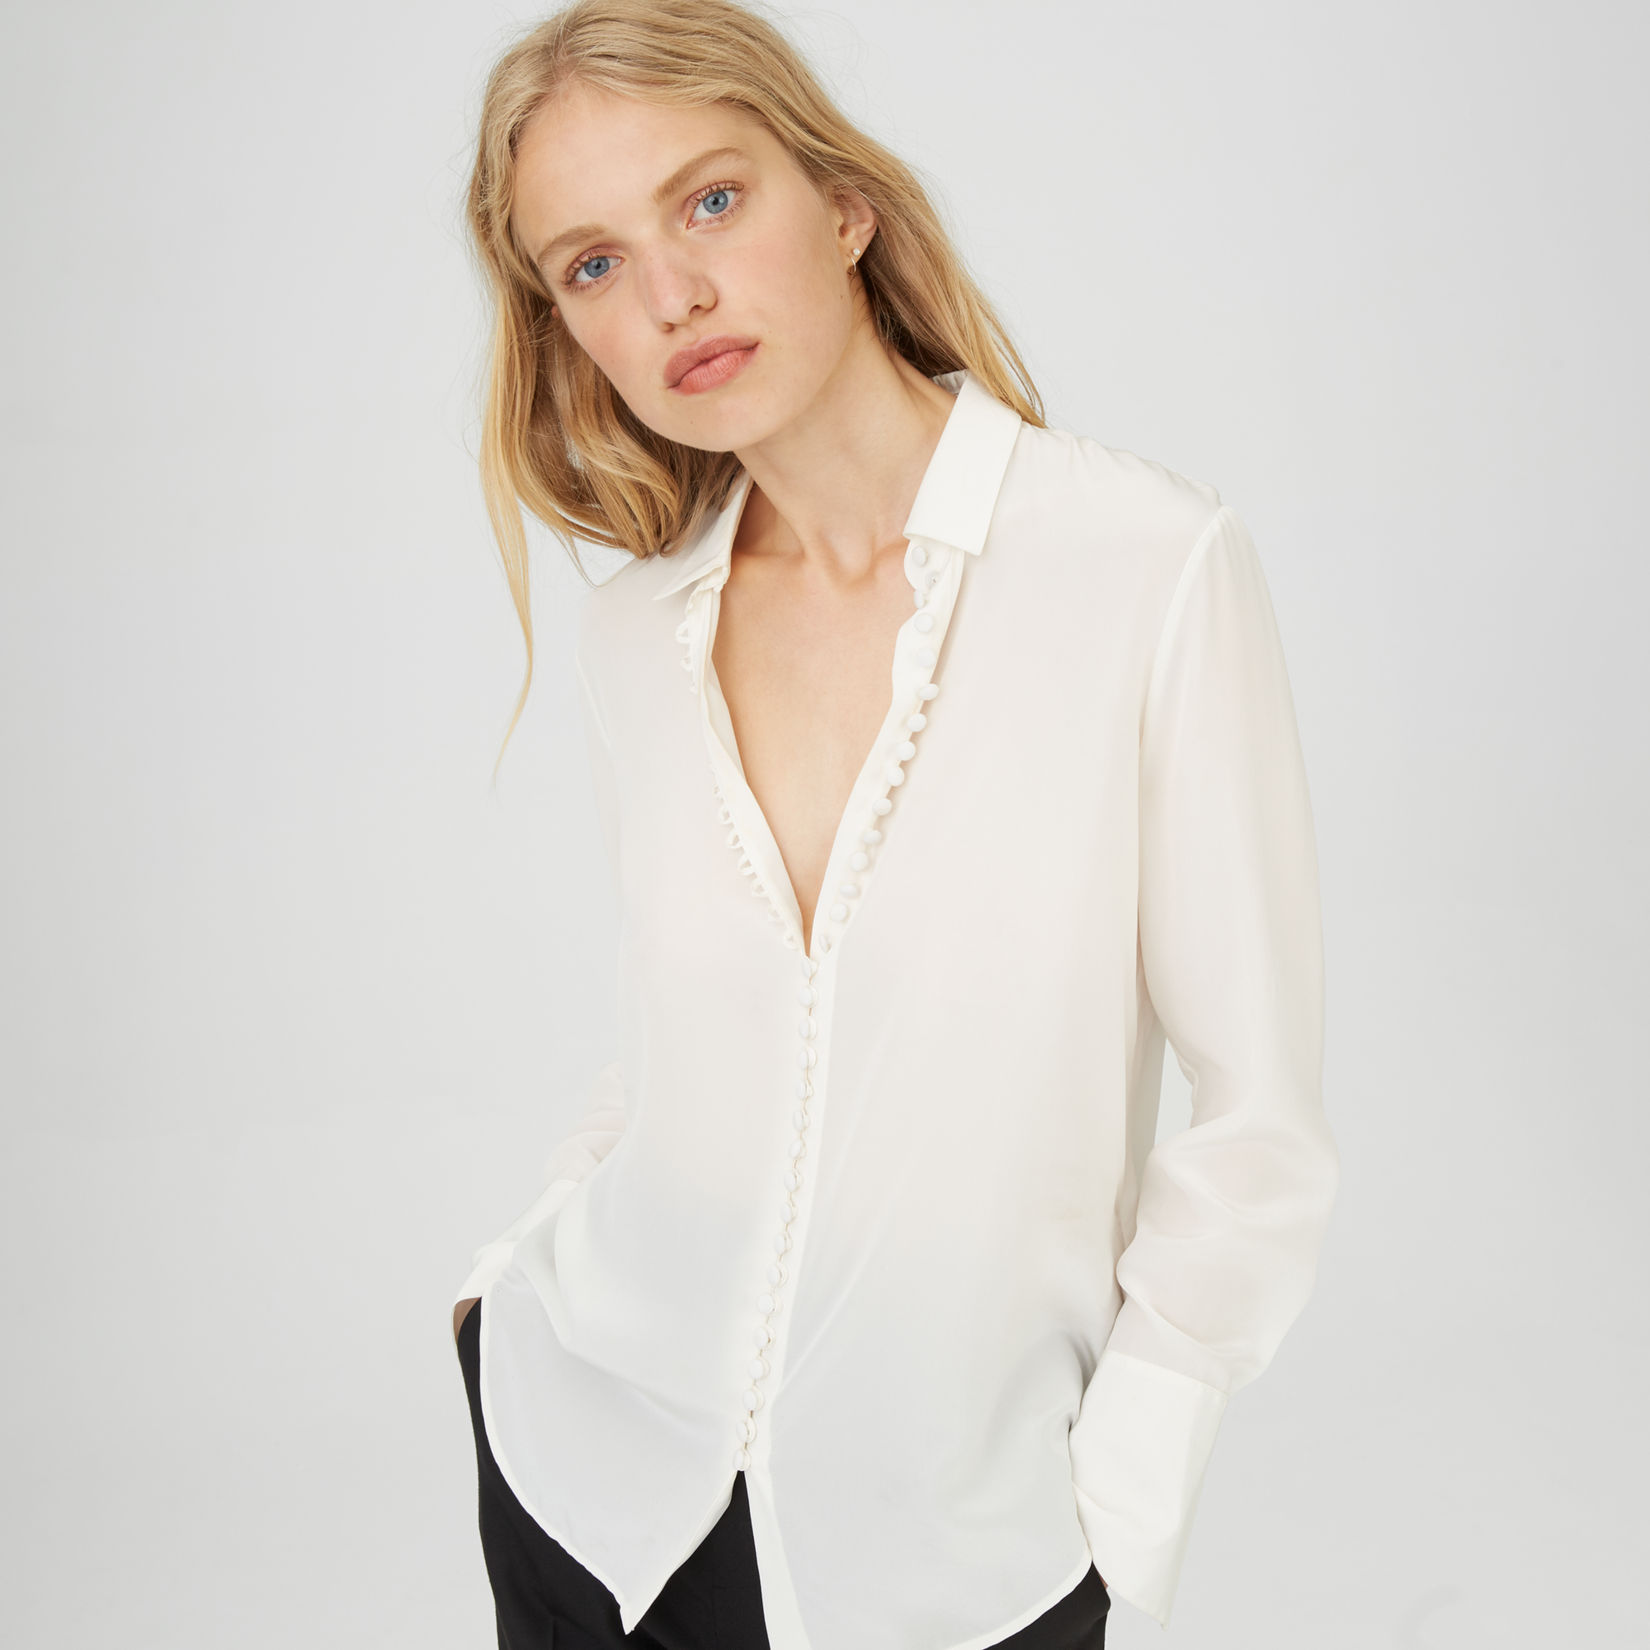 ba071719d9 Ladies White Ruffle Shirt Uk – EDGE Engineering and Consulting Limited